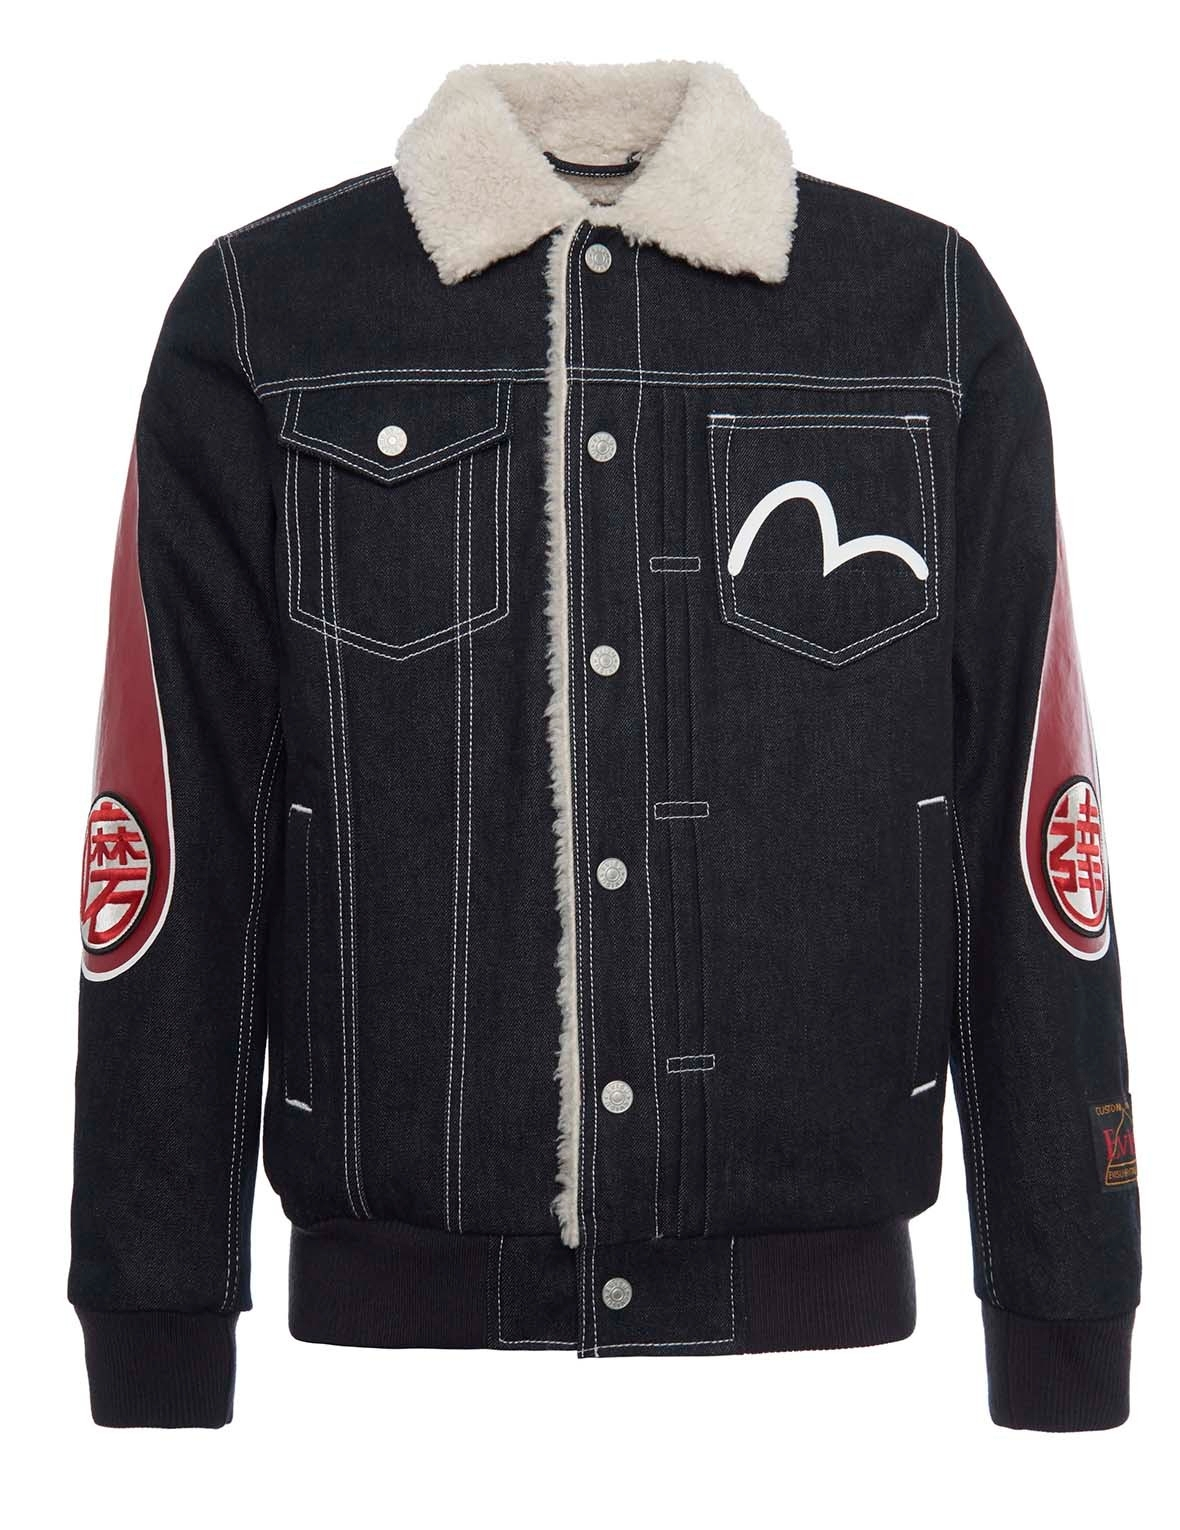 EVISU Daicock Printed Shearling Denim Jacket